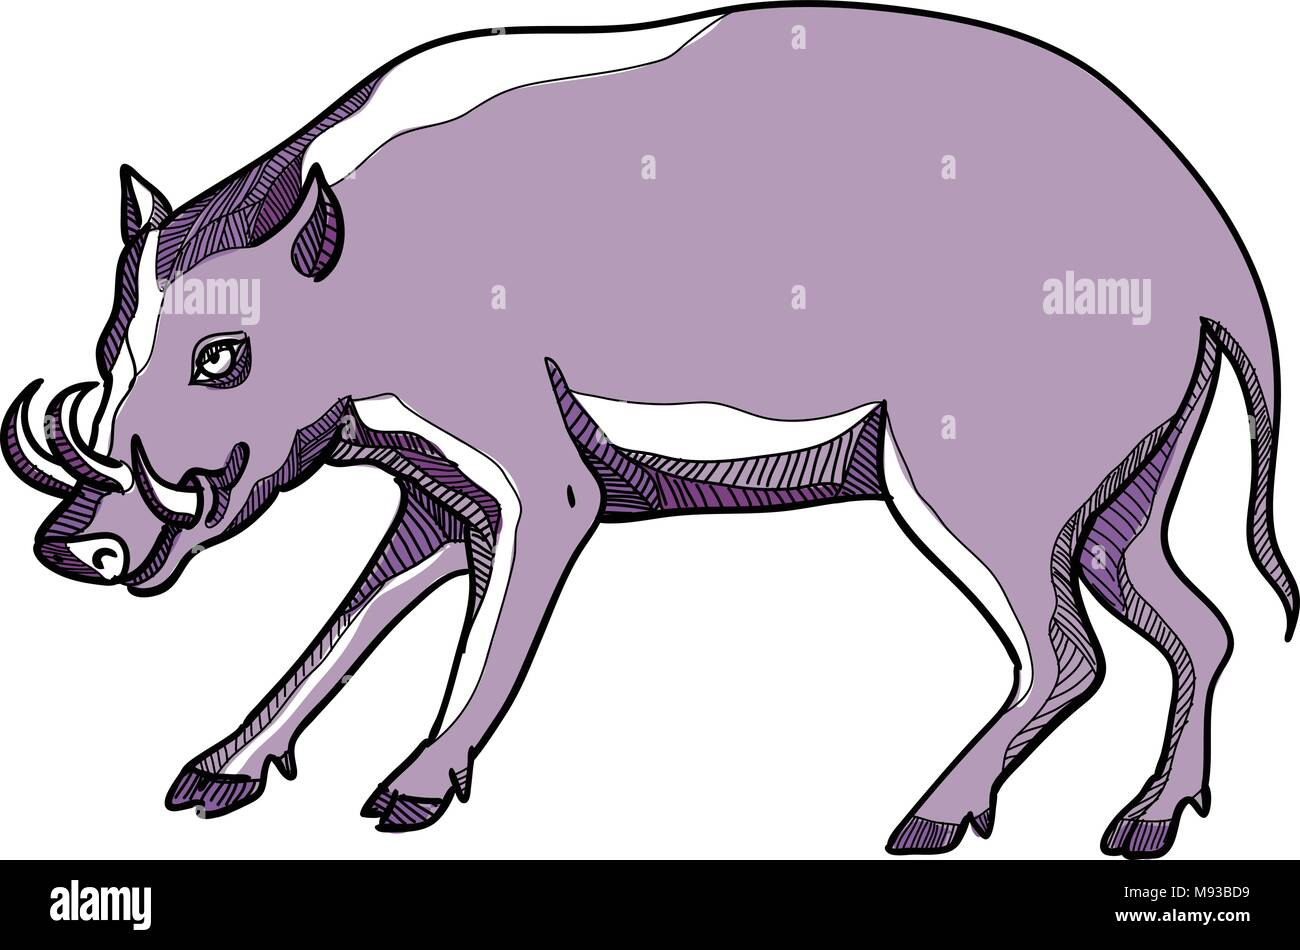 Drawing sketch style illustration of a babirusa or deer-pig, a genus, Babyrousa, in the swine family found the Indonesian islands of Sulawesi, Togian, - Stock Vector